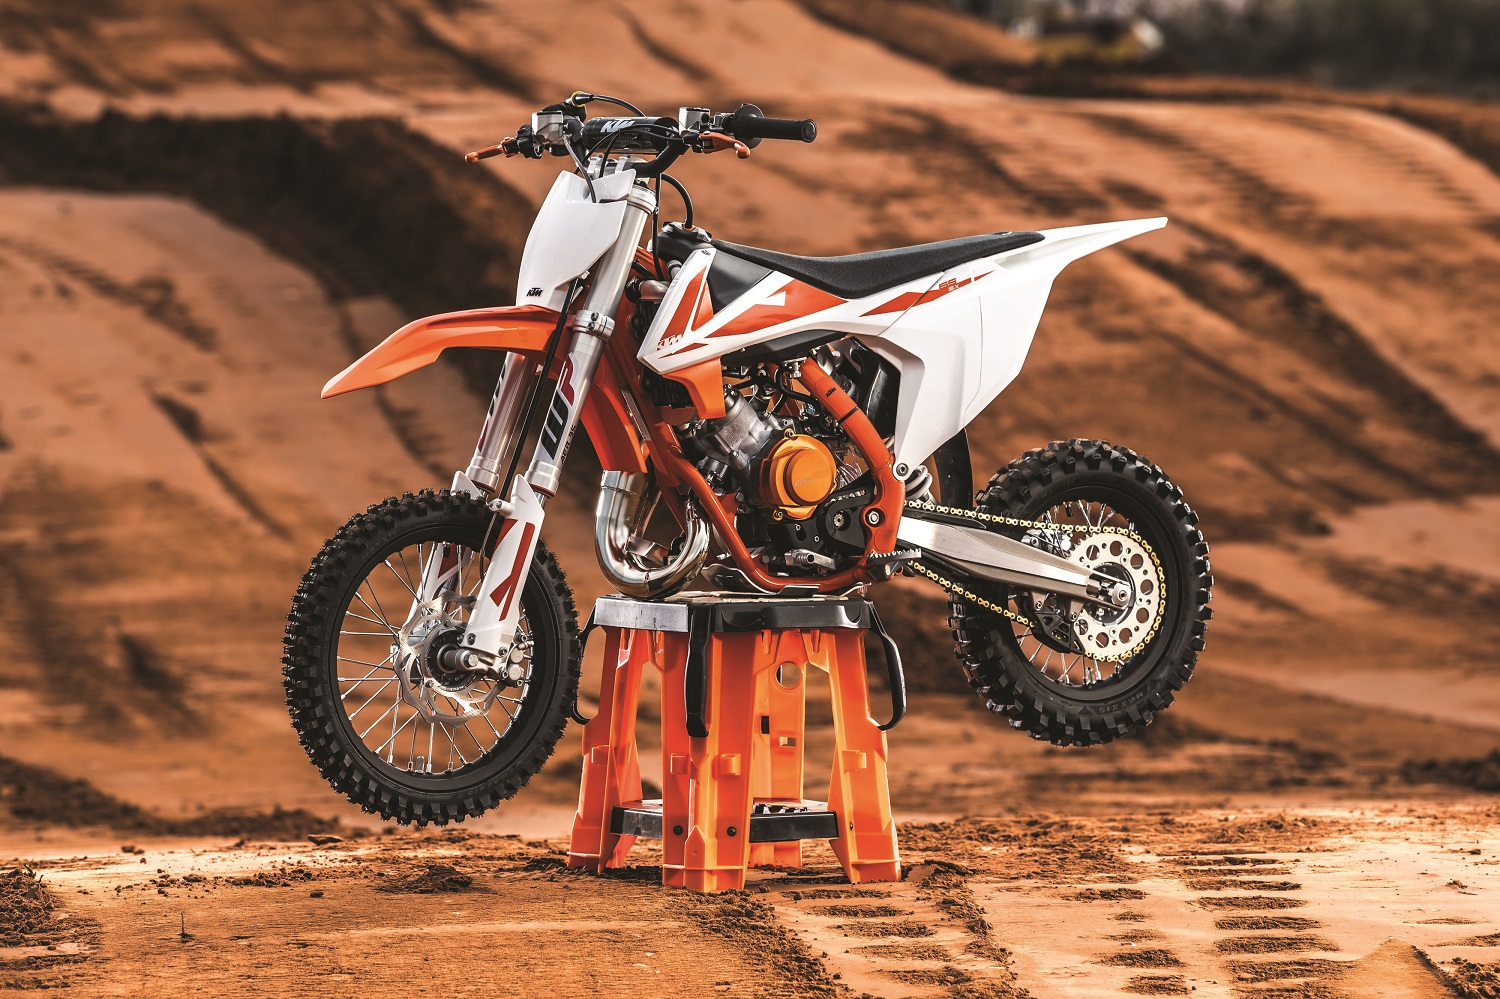 02_Static_KTM 65 SX MY2019